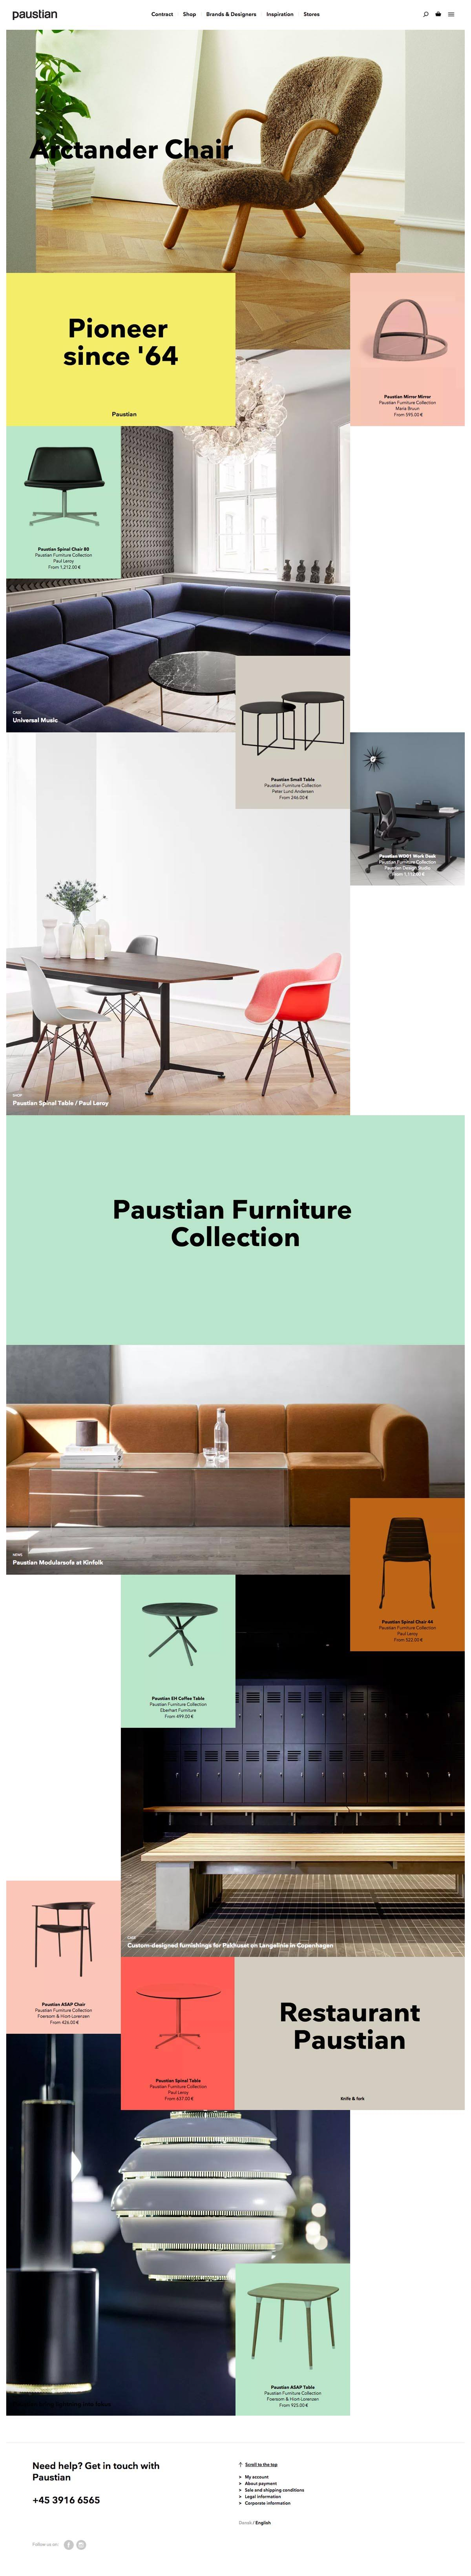 eCommerce website: Paustian